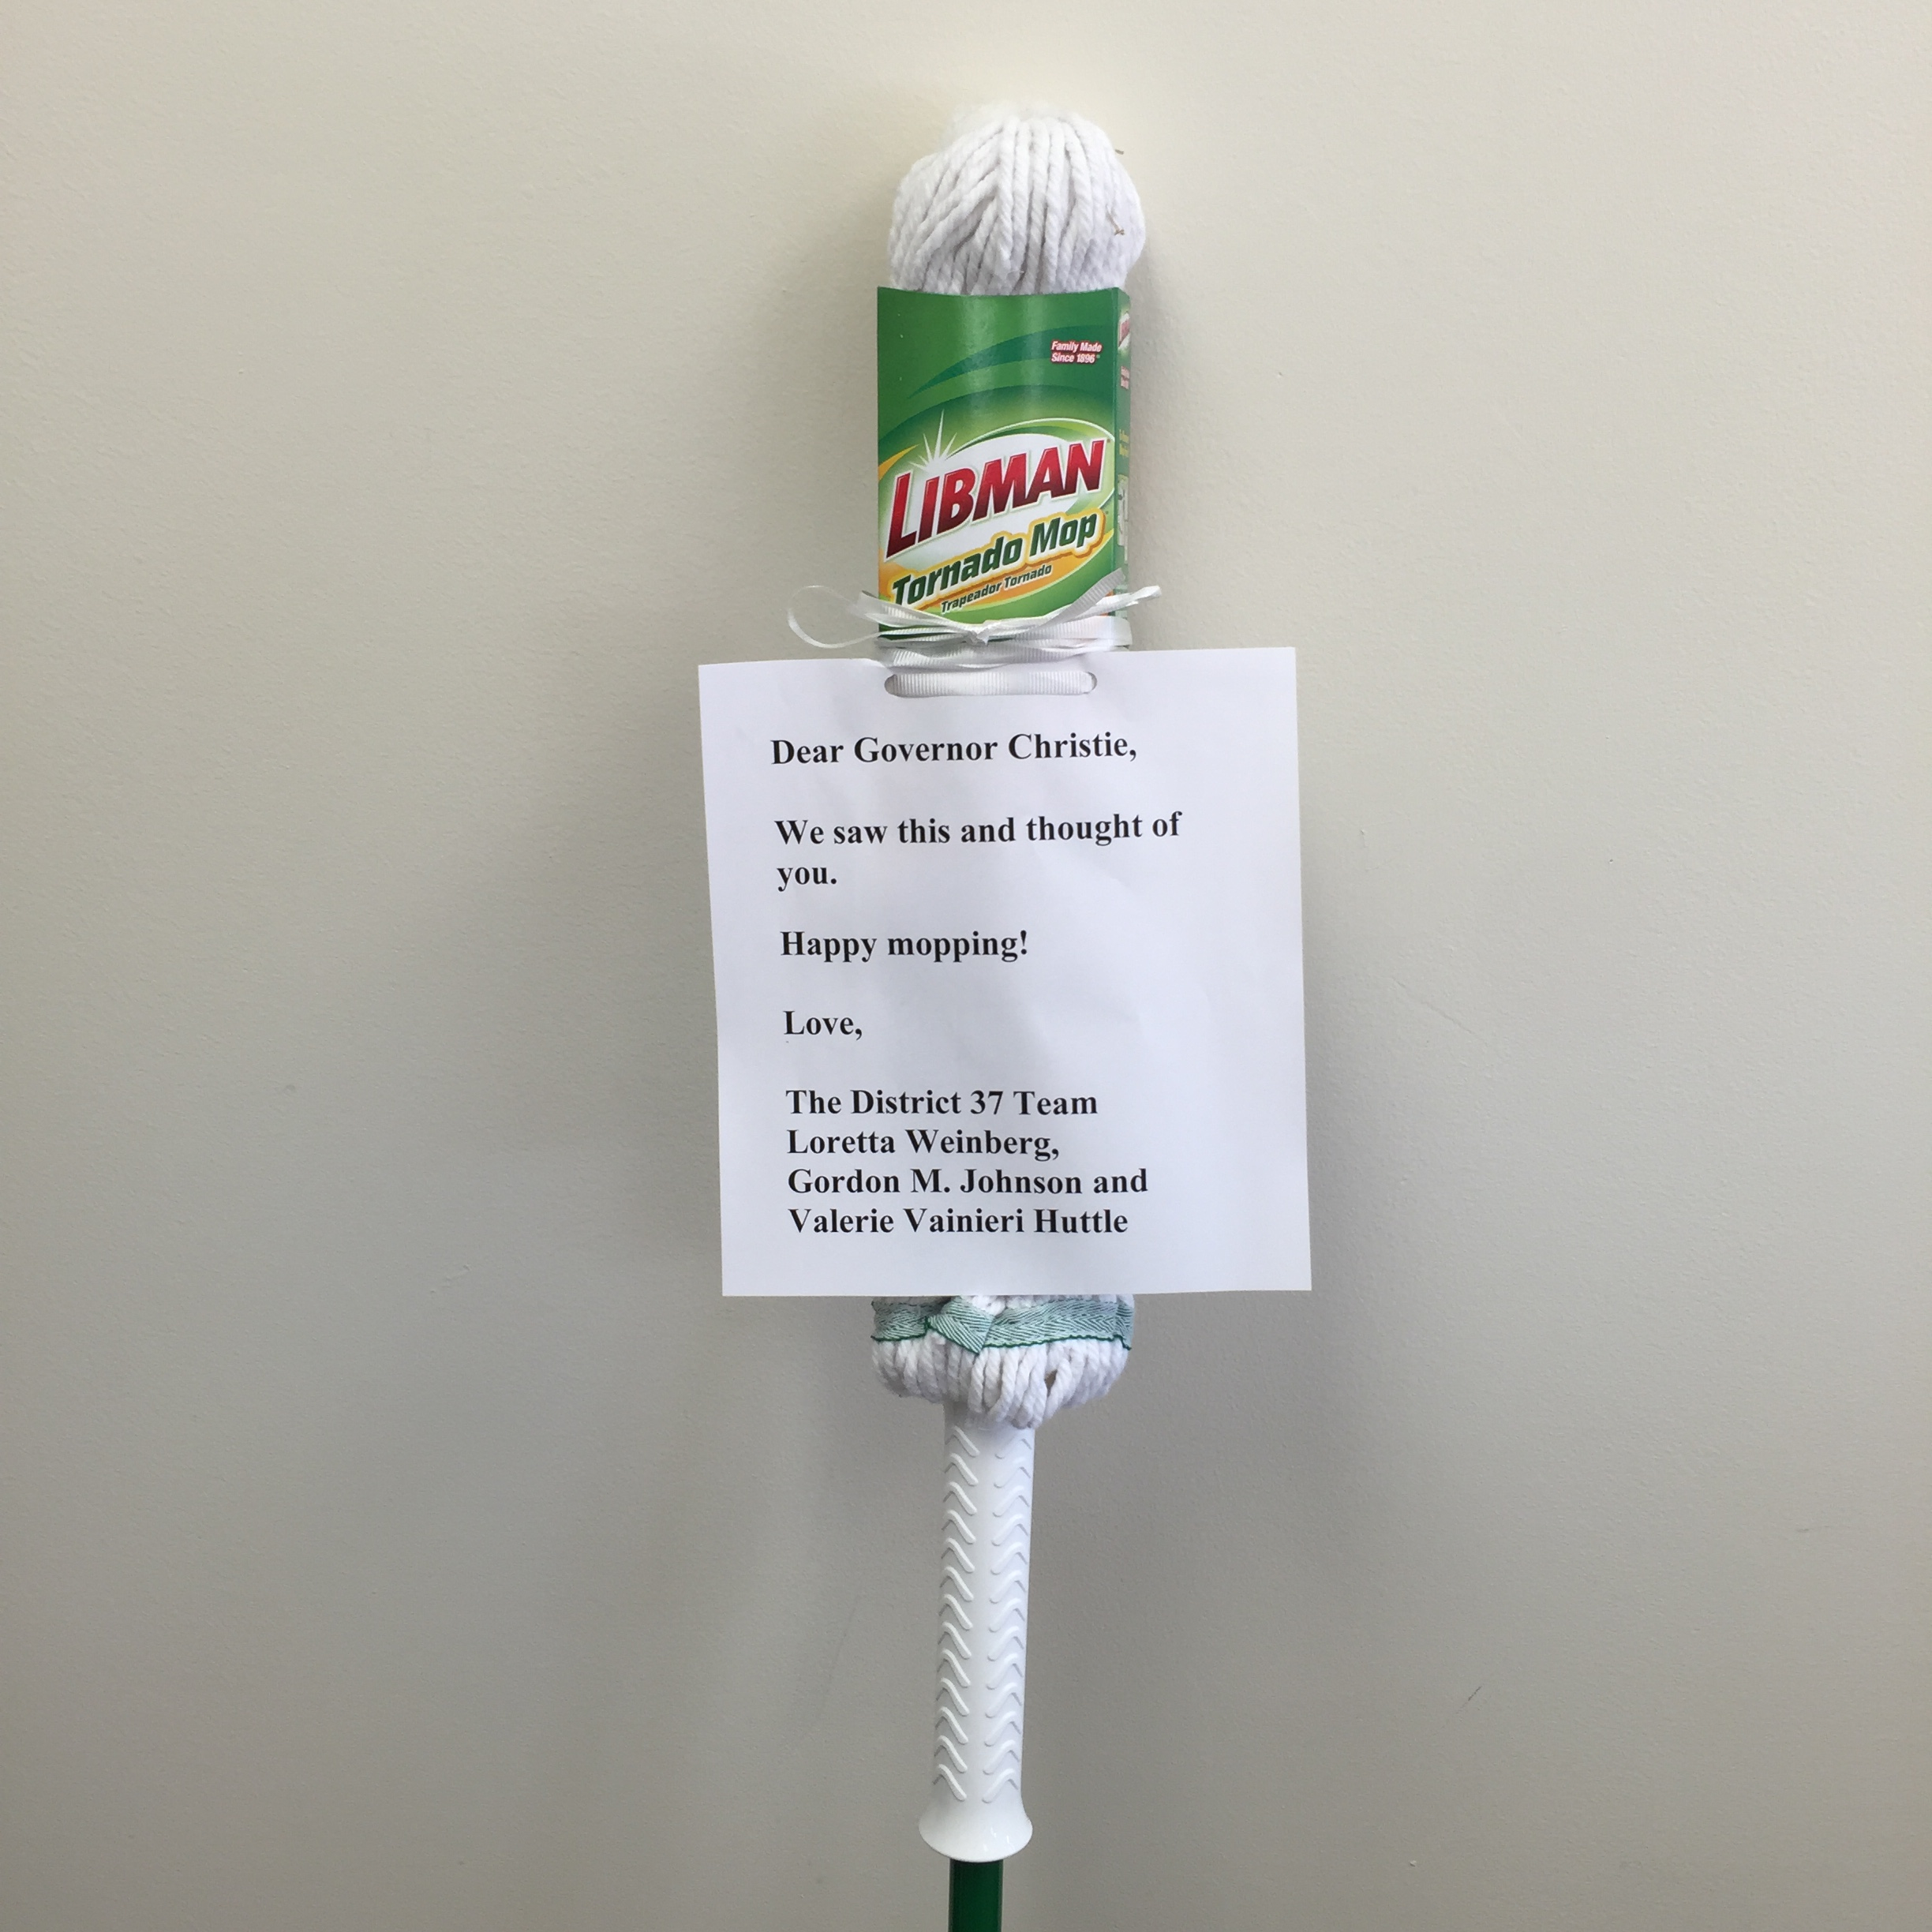 A mop from the team in LD37.